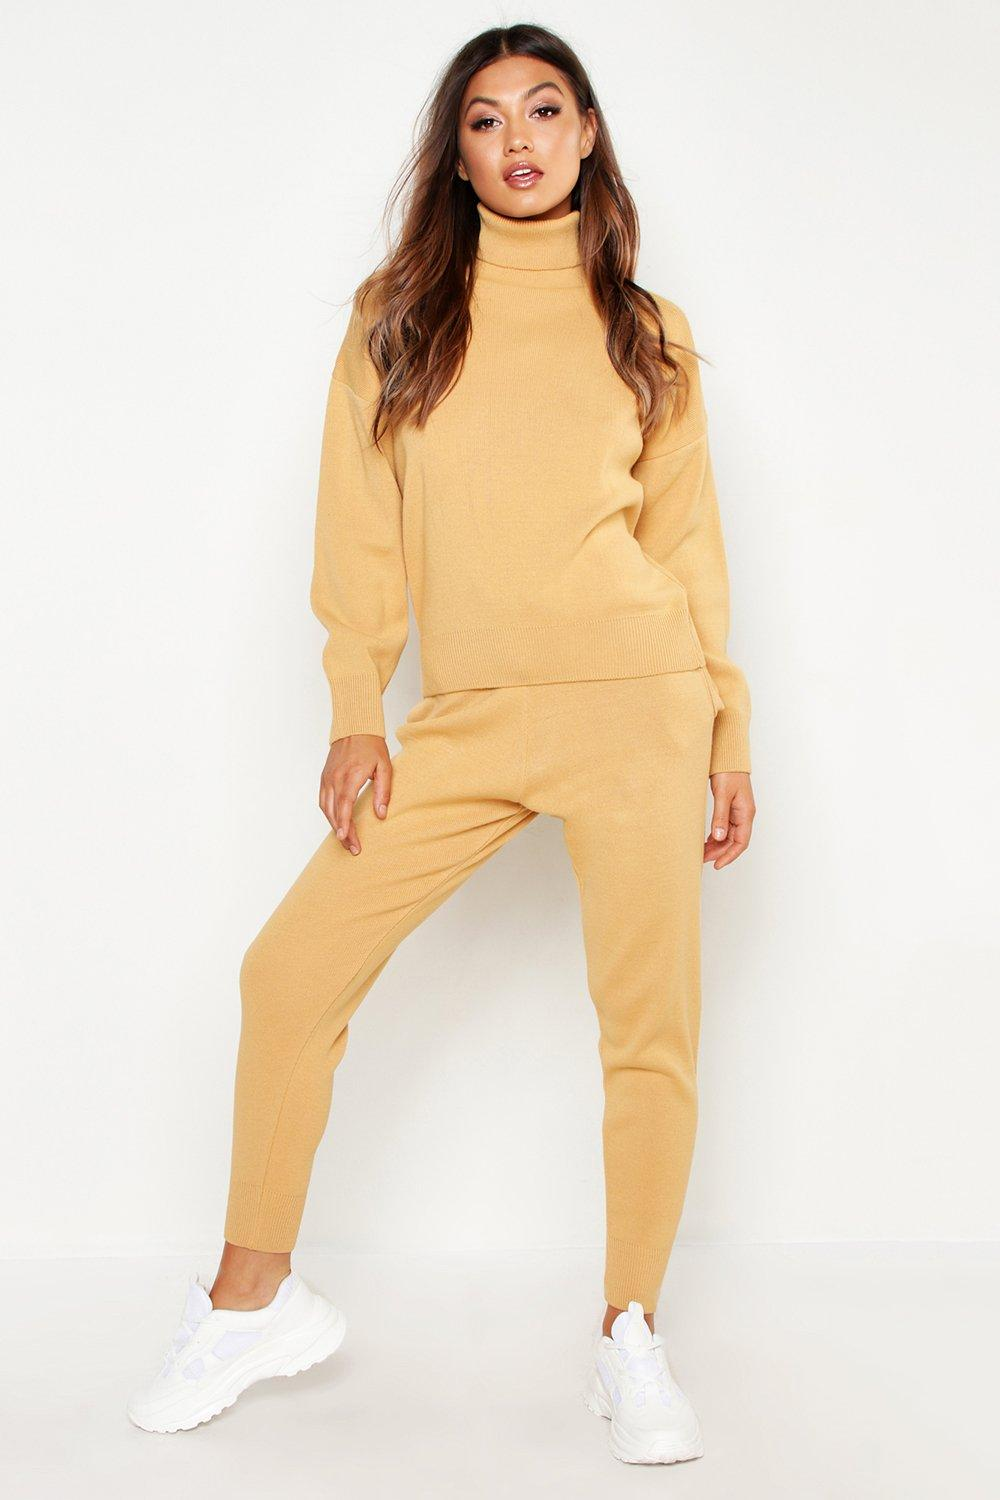 Womens Roll Neck Knitted Lounge Set - camel - S, Camel - Boohoo.com